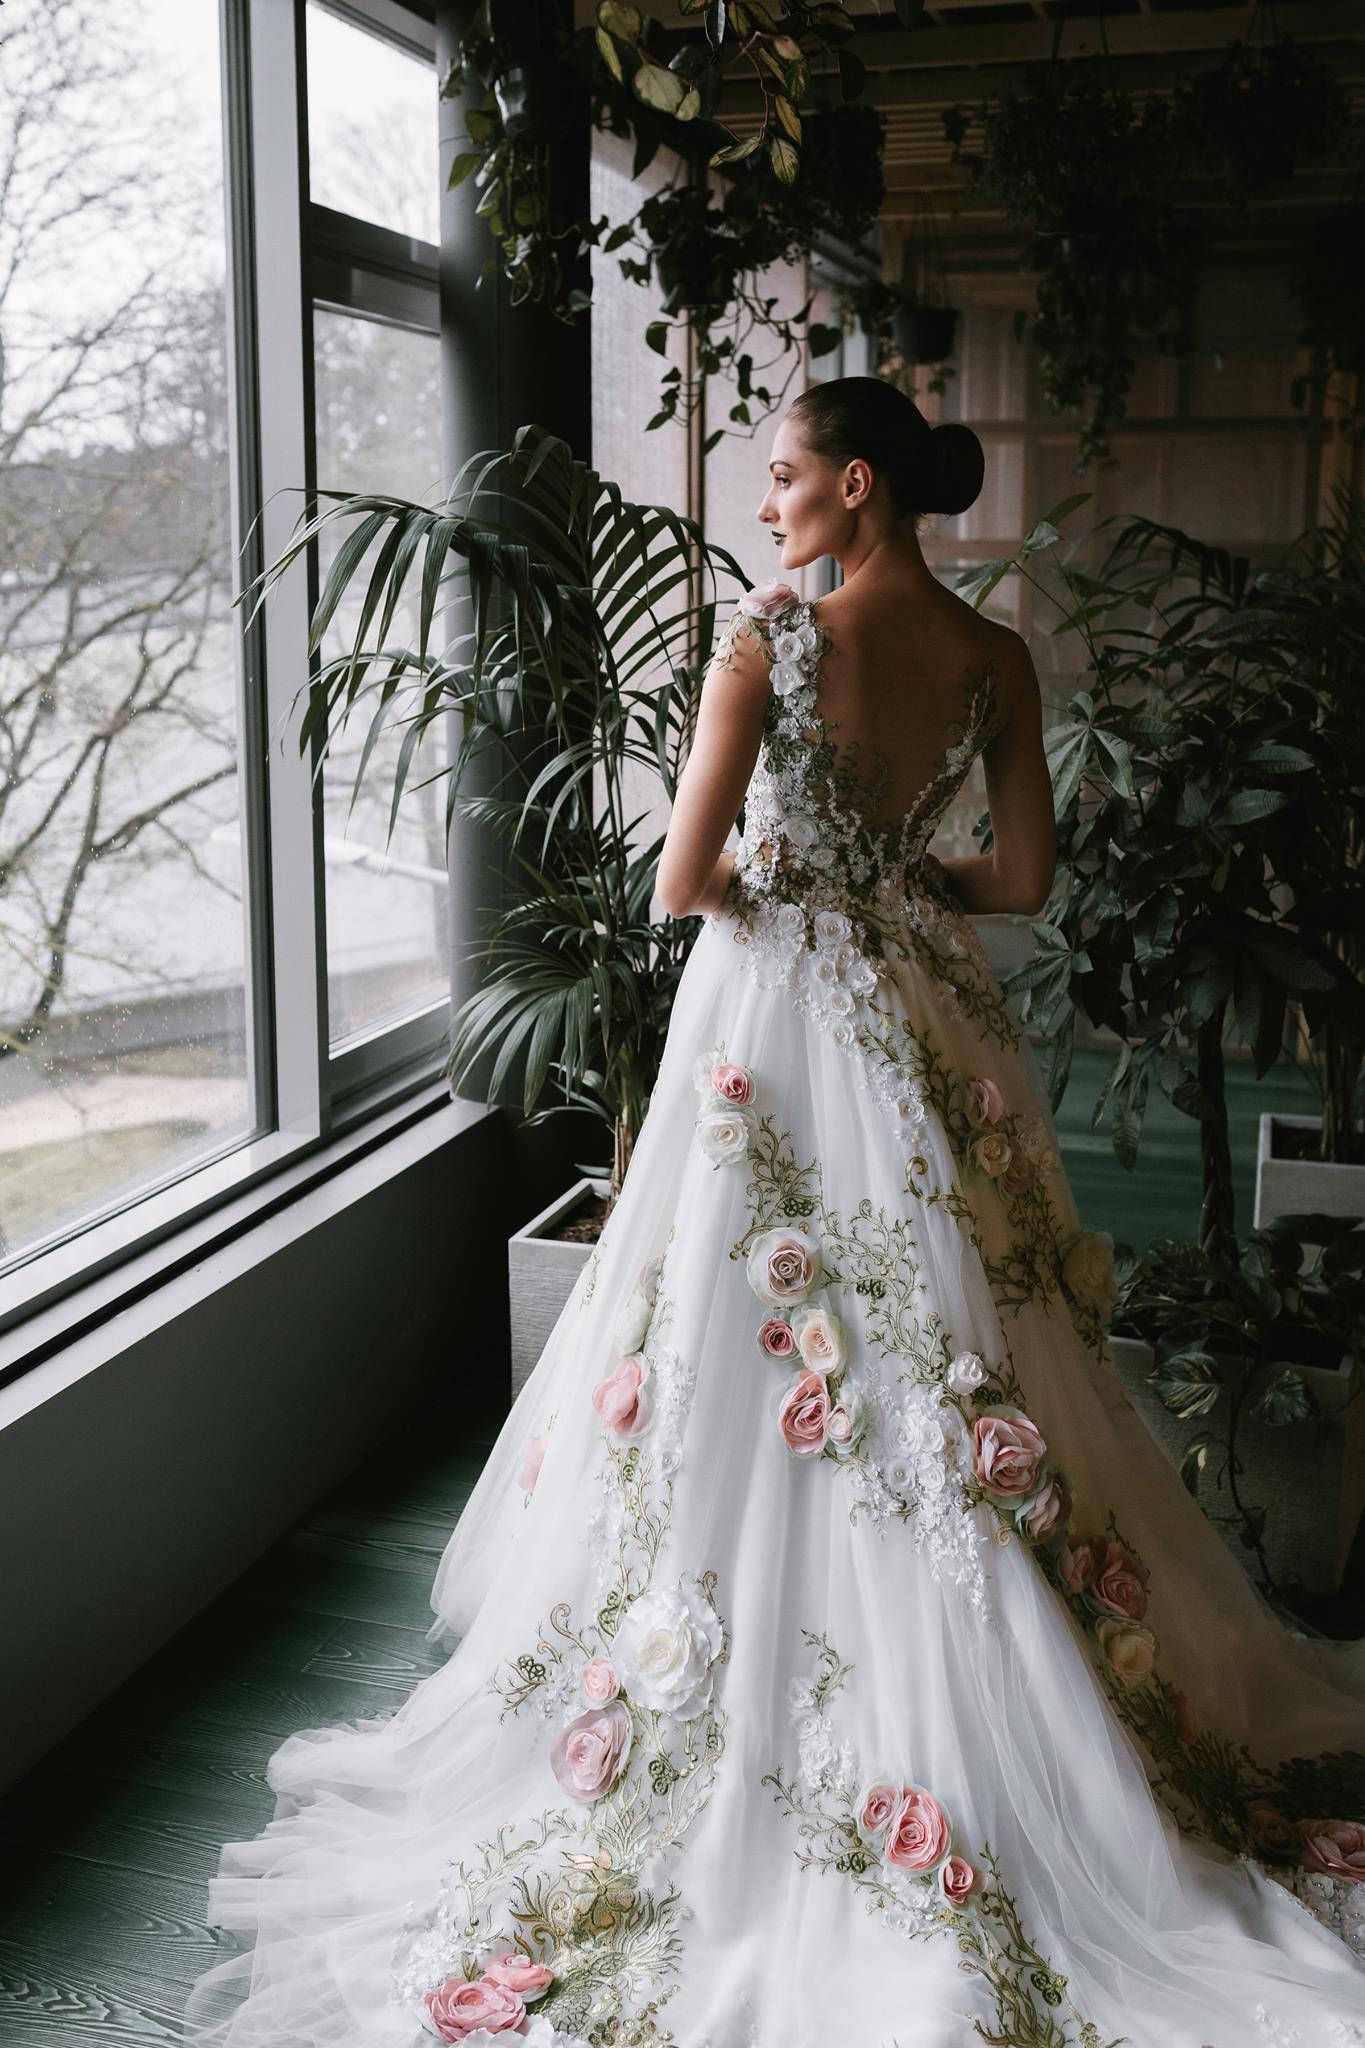 Wedding dress from Inga Ezergale design collection 12 ,sale